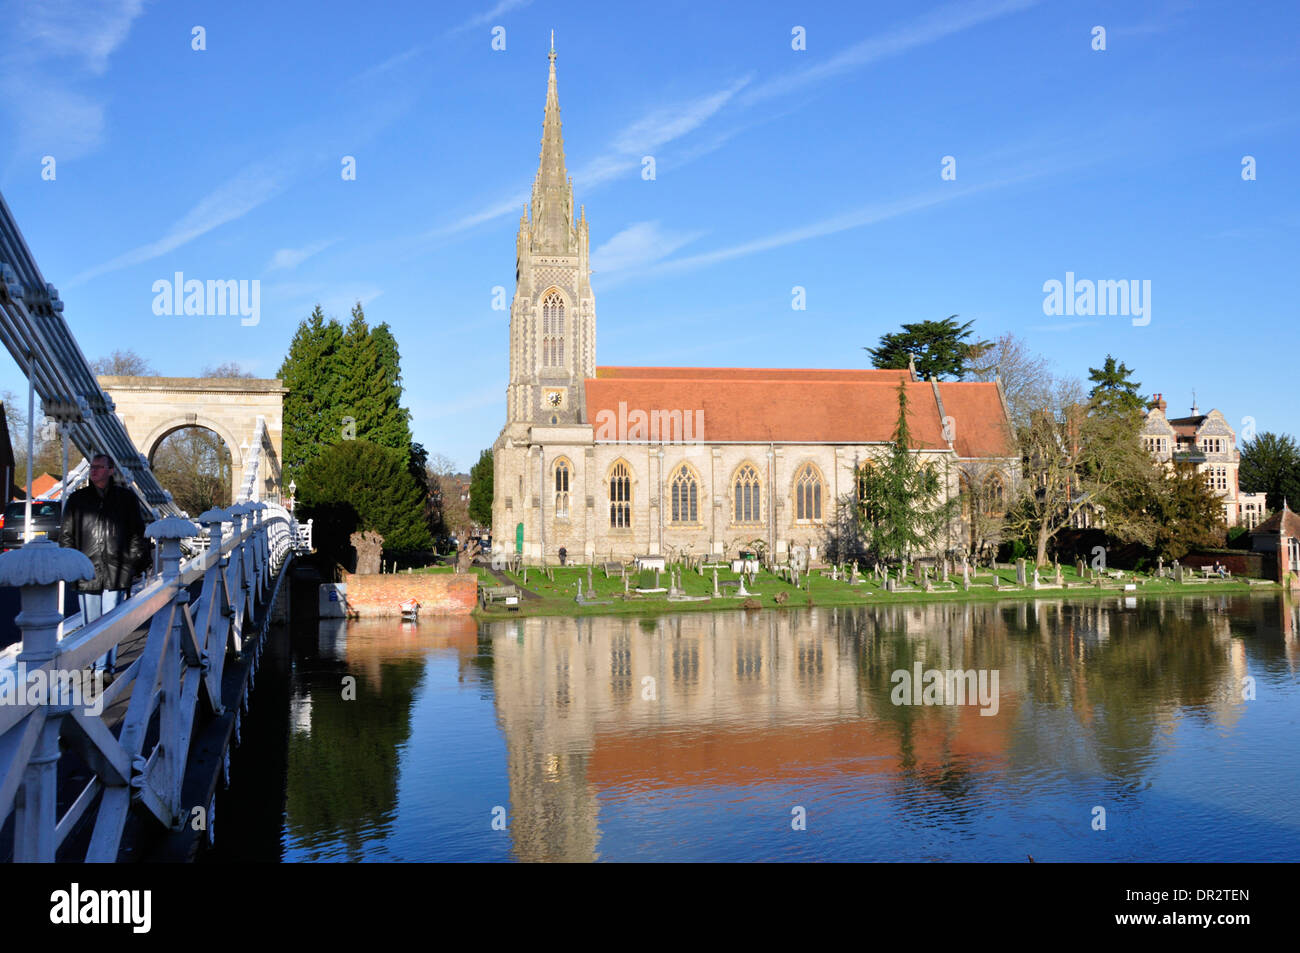 Bucks - Marlow on Thames - over the river - imposing All Saints church - tall steeple- red tiles - buff stonework - reflections - Stock Image